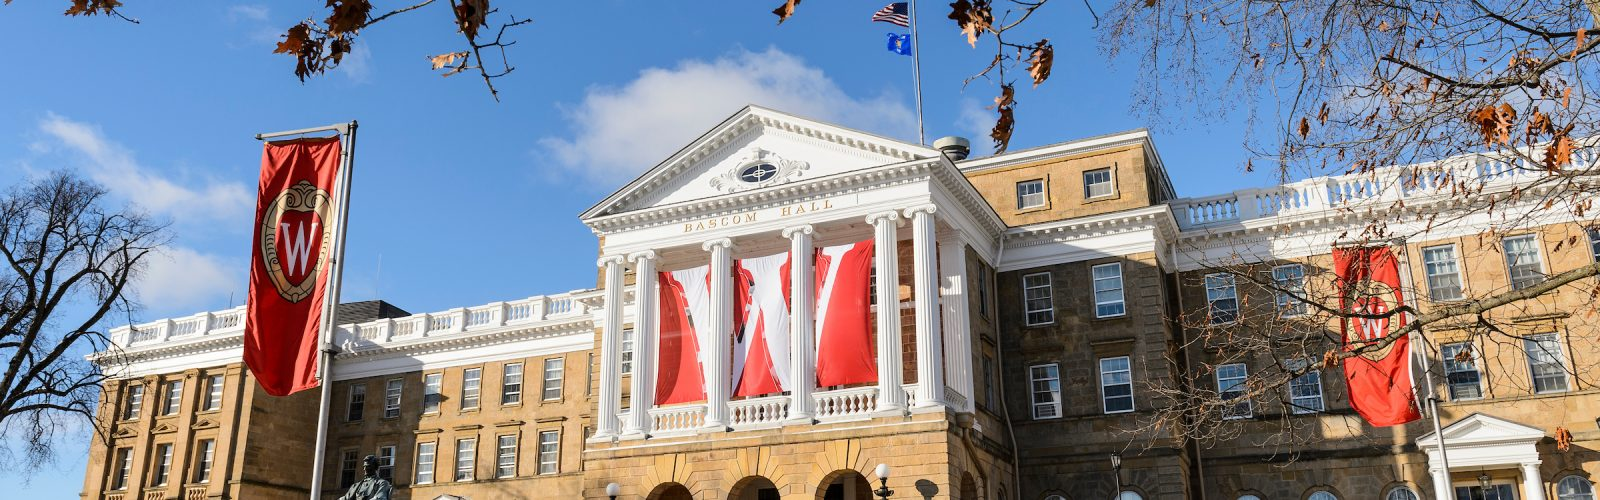 W banners hang from the columns of Bascom Hall.